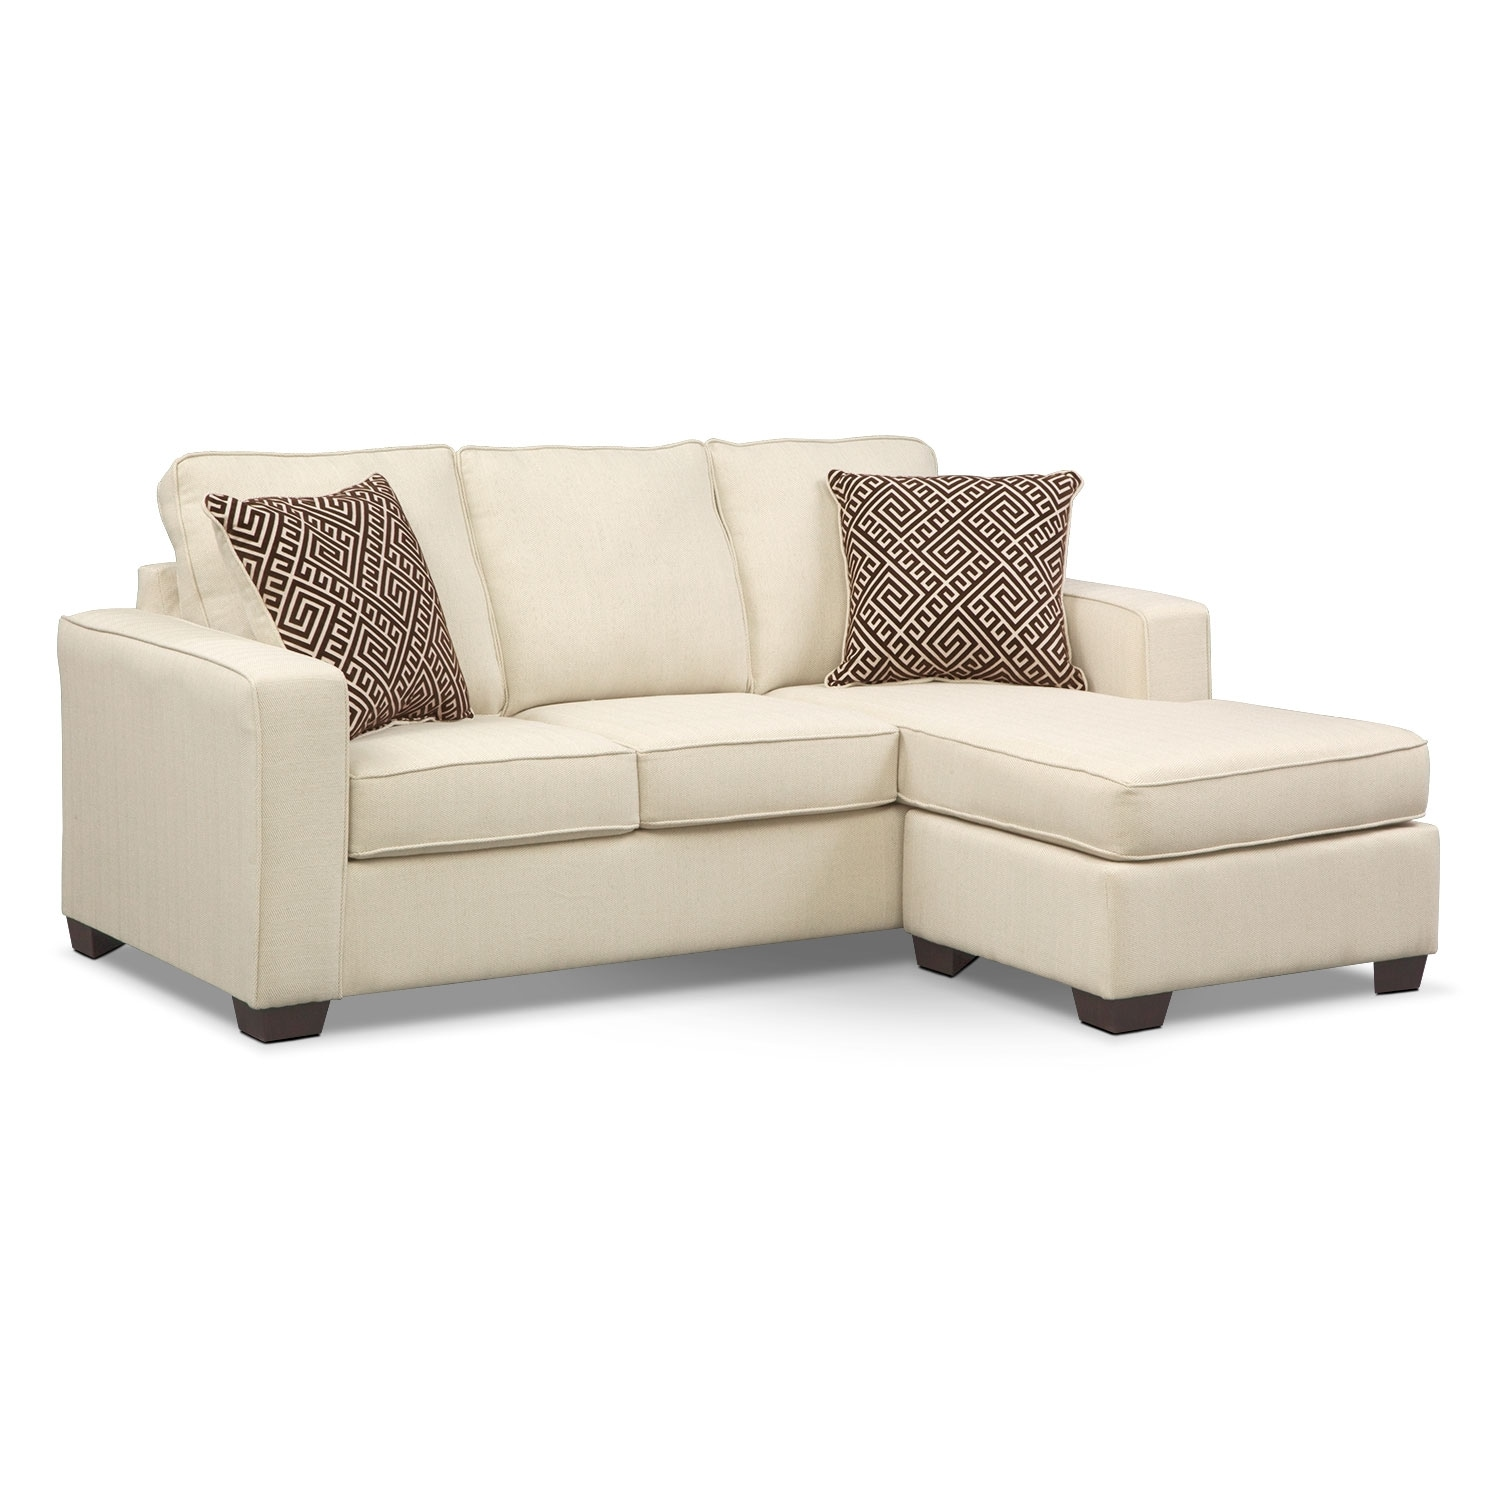 Accent and Occasional Furniture - Sterling Innerspring Sleeper Sofa with Chaise - Beige